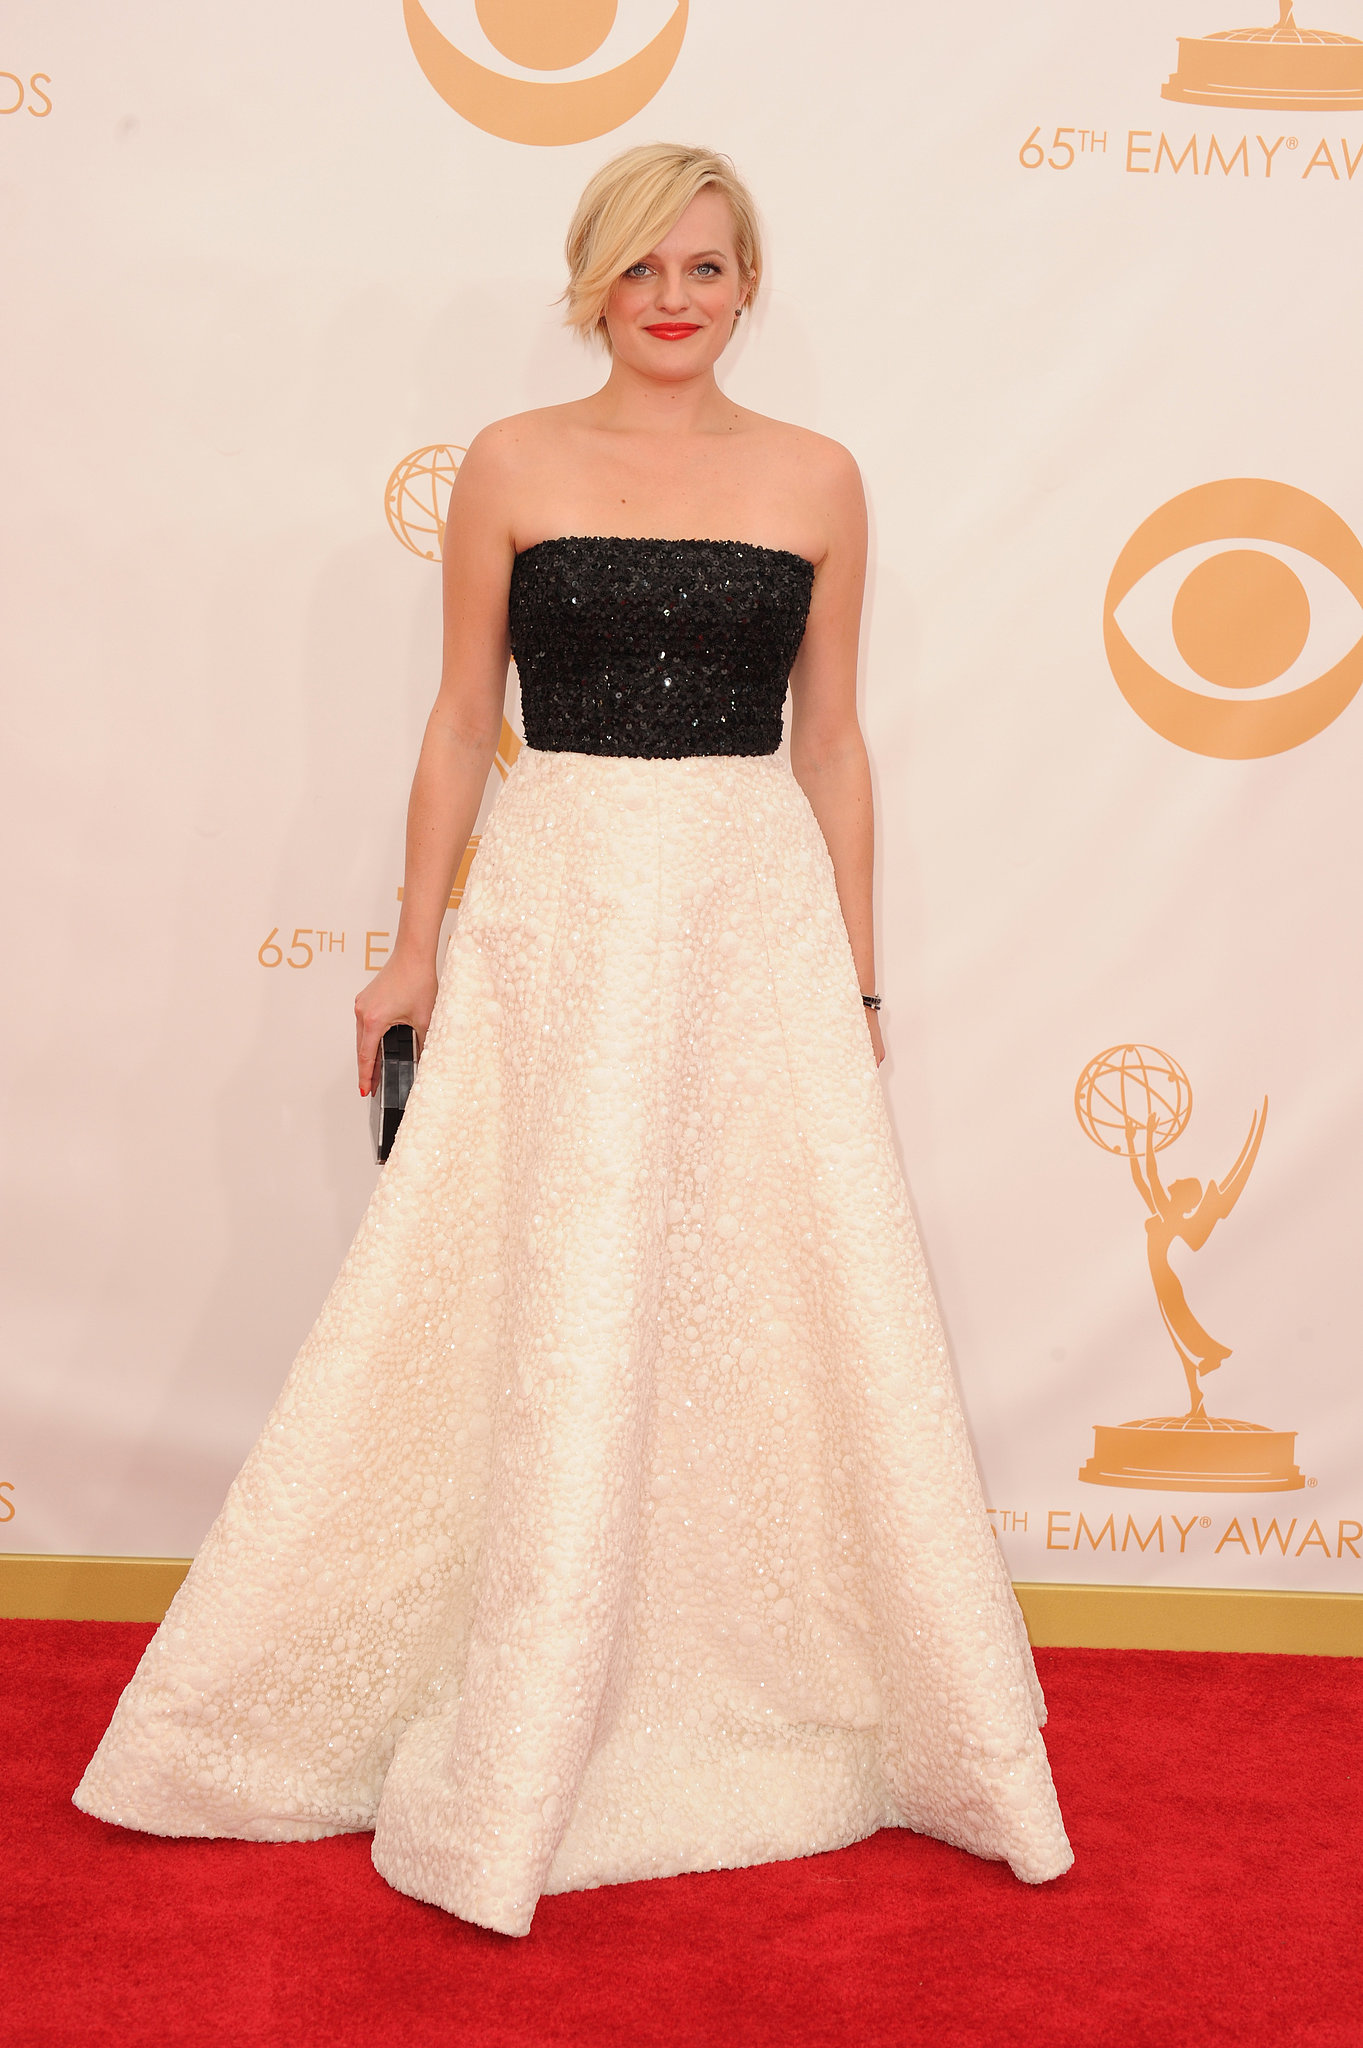 Elisabeth Moss, in a two-tone Andrew Gn dress, clearly couldn't settle for a single shade! She finished it off with vintage Neil Lane jewelry and a Rauwolf bag.